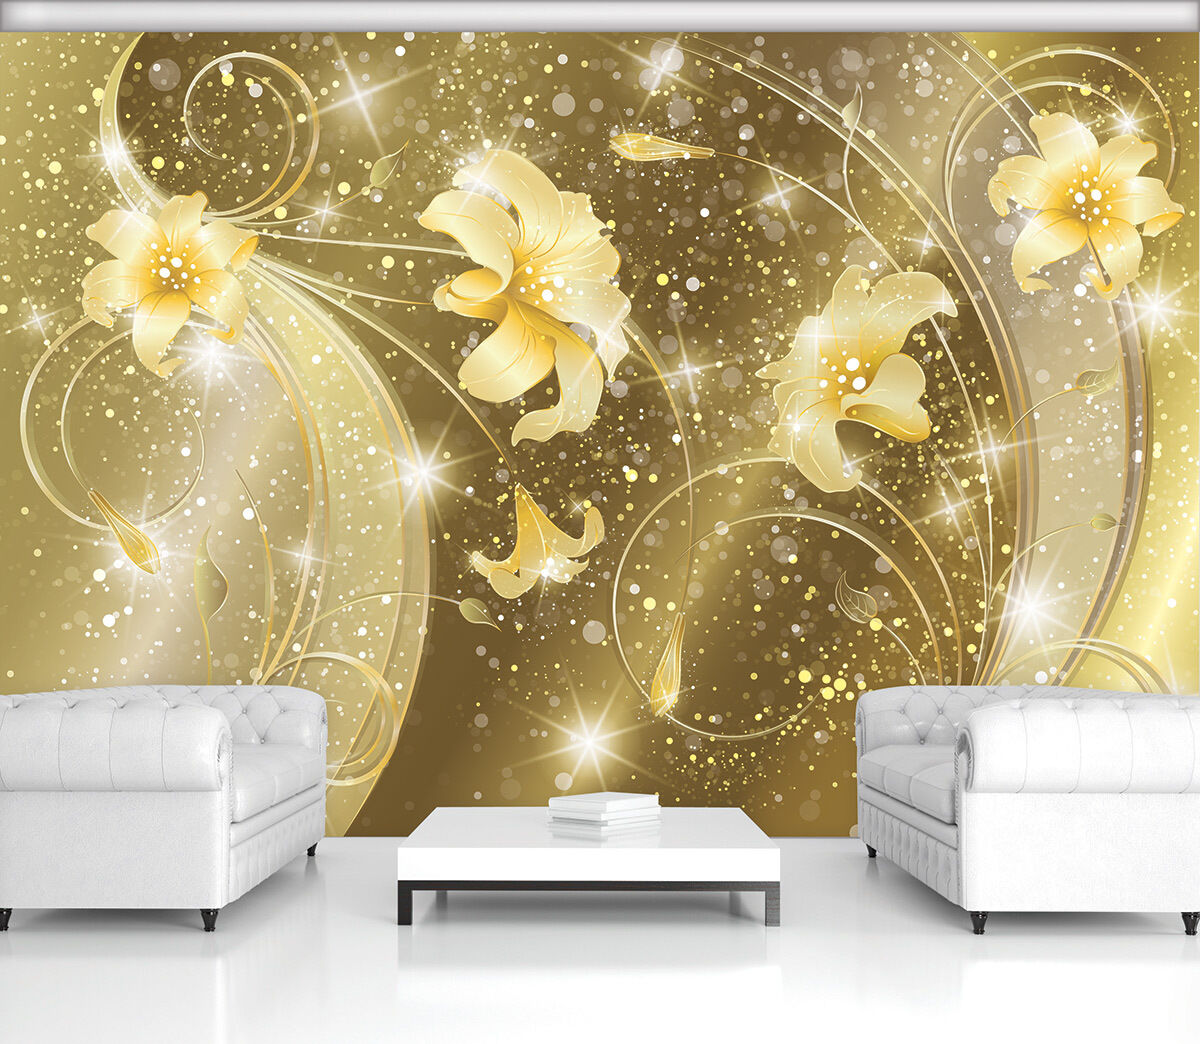 poster fototapeten fototapete tapeten foto ornament gold blumen lillie 2342 p8 eur 24 90. Black Bedroom Furniture Sets. Home Design Ideas